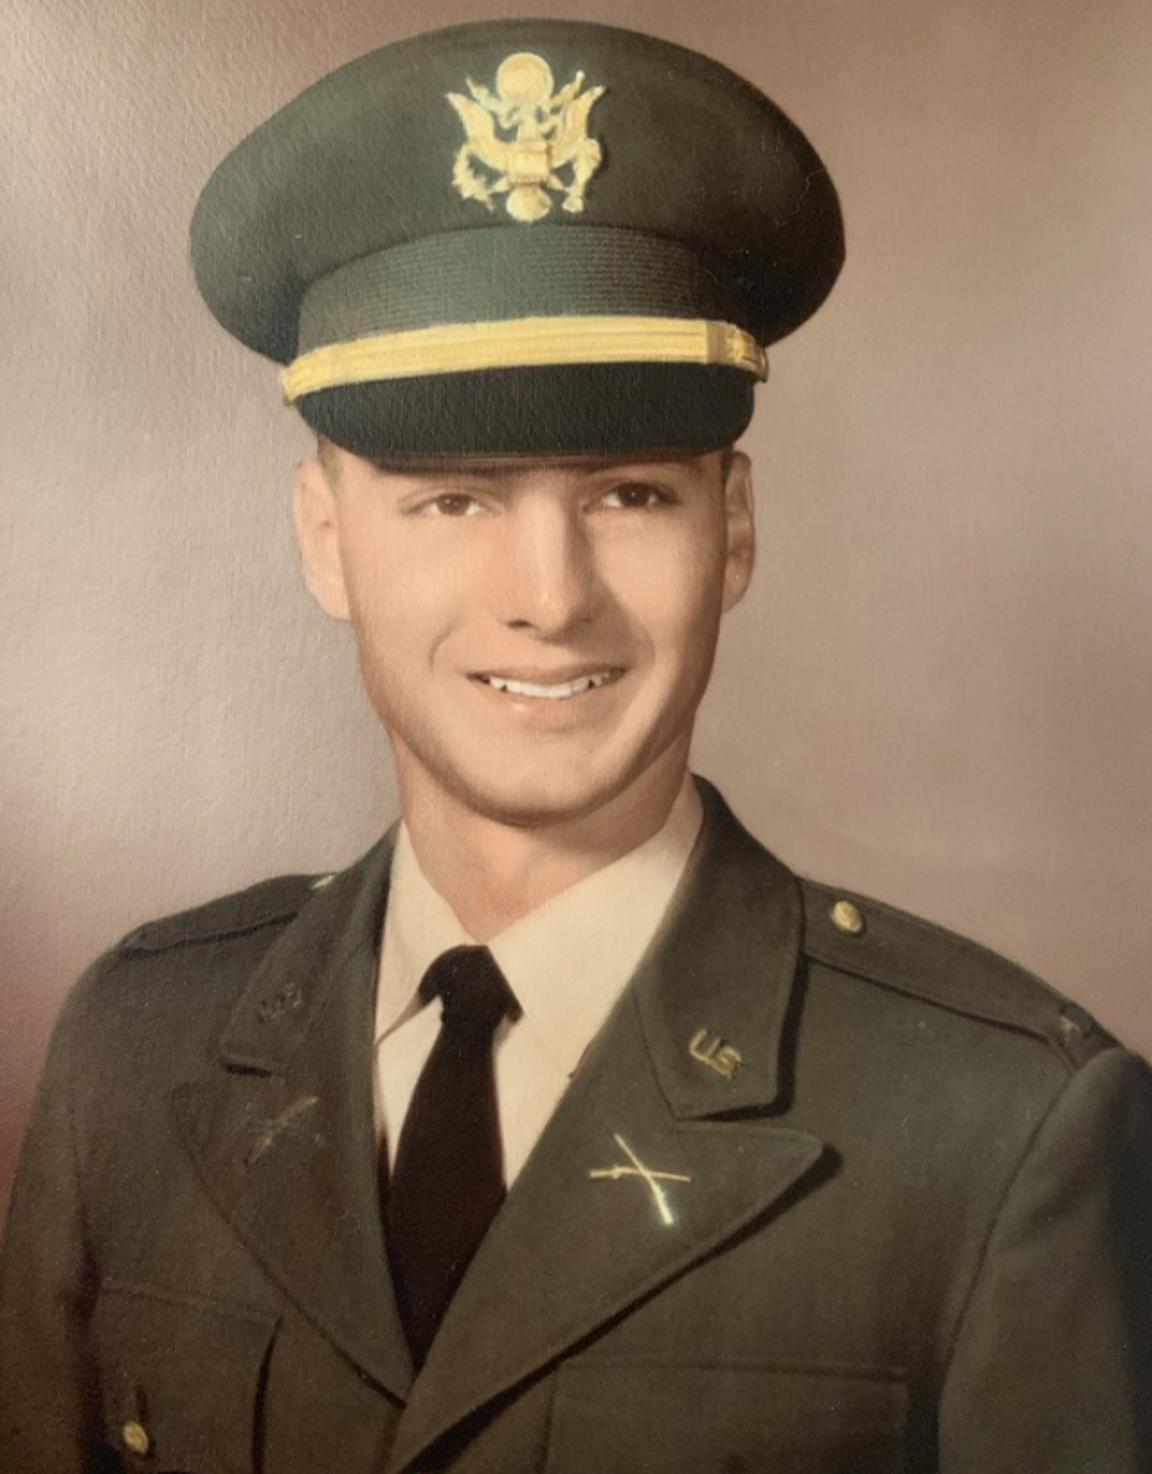 Deane Taylor in his uniform. He was a helicopter pilot for the Army who was shot down during a reconnaissance mission in January 1969.